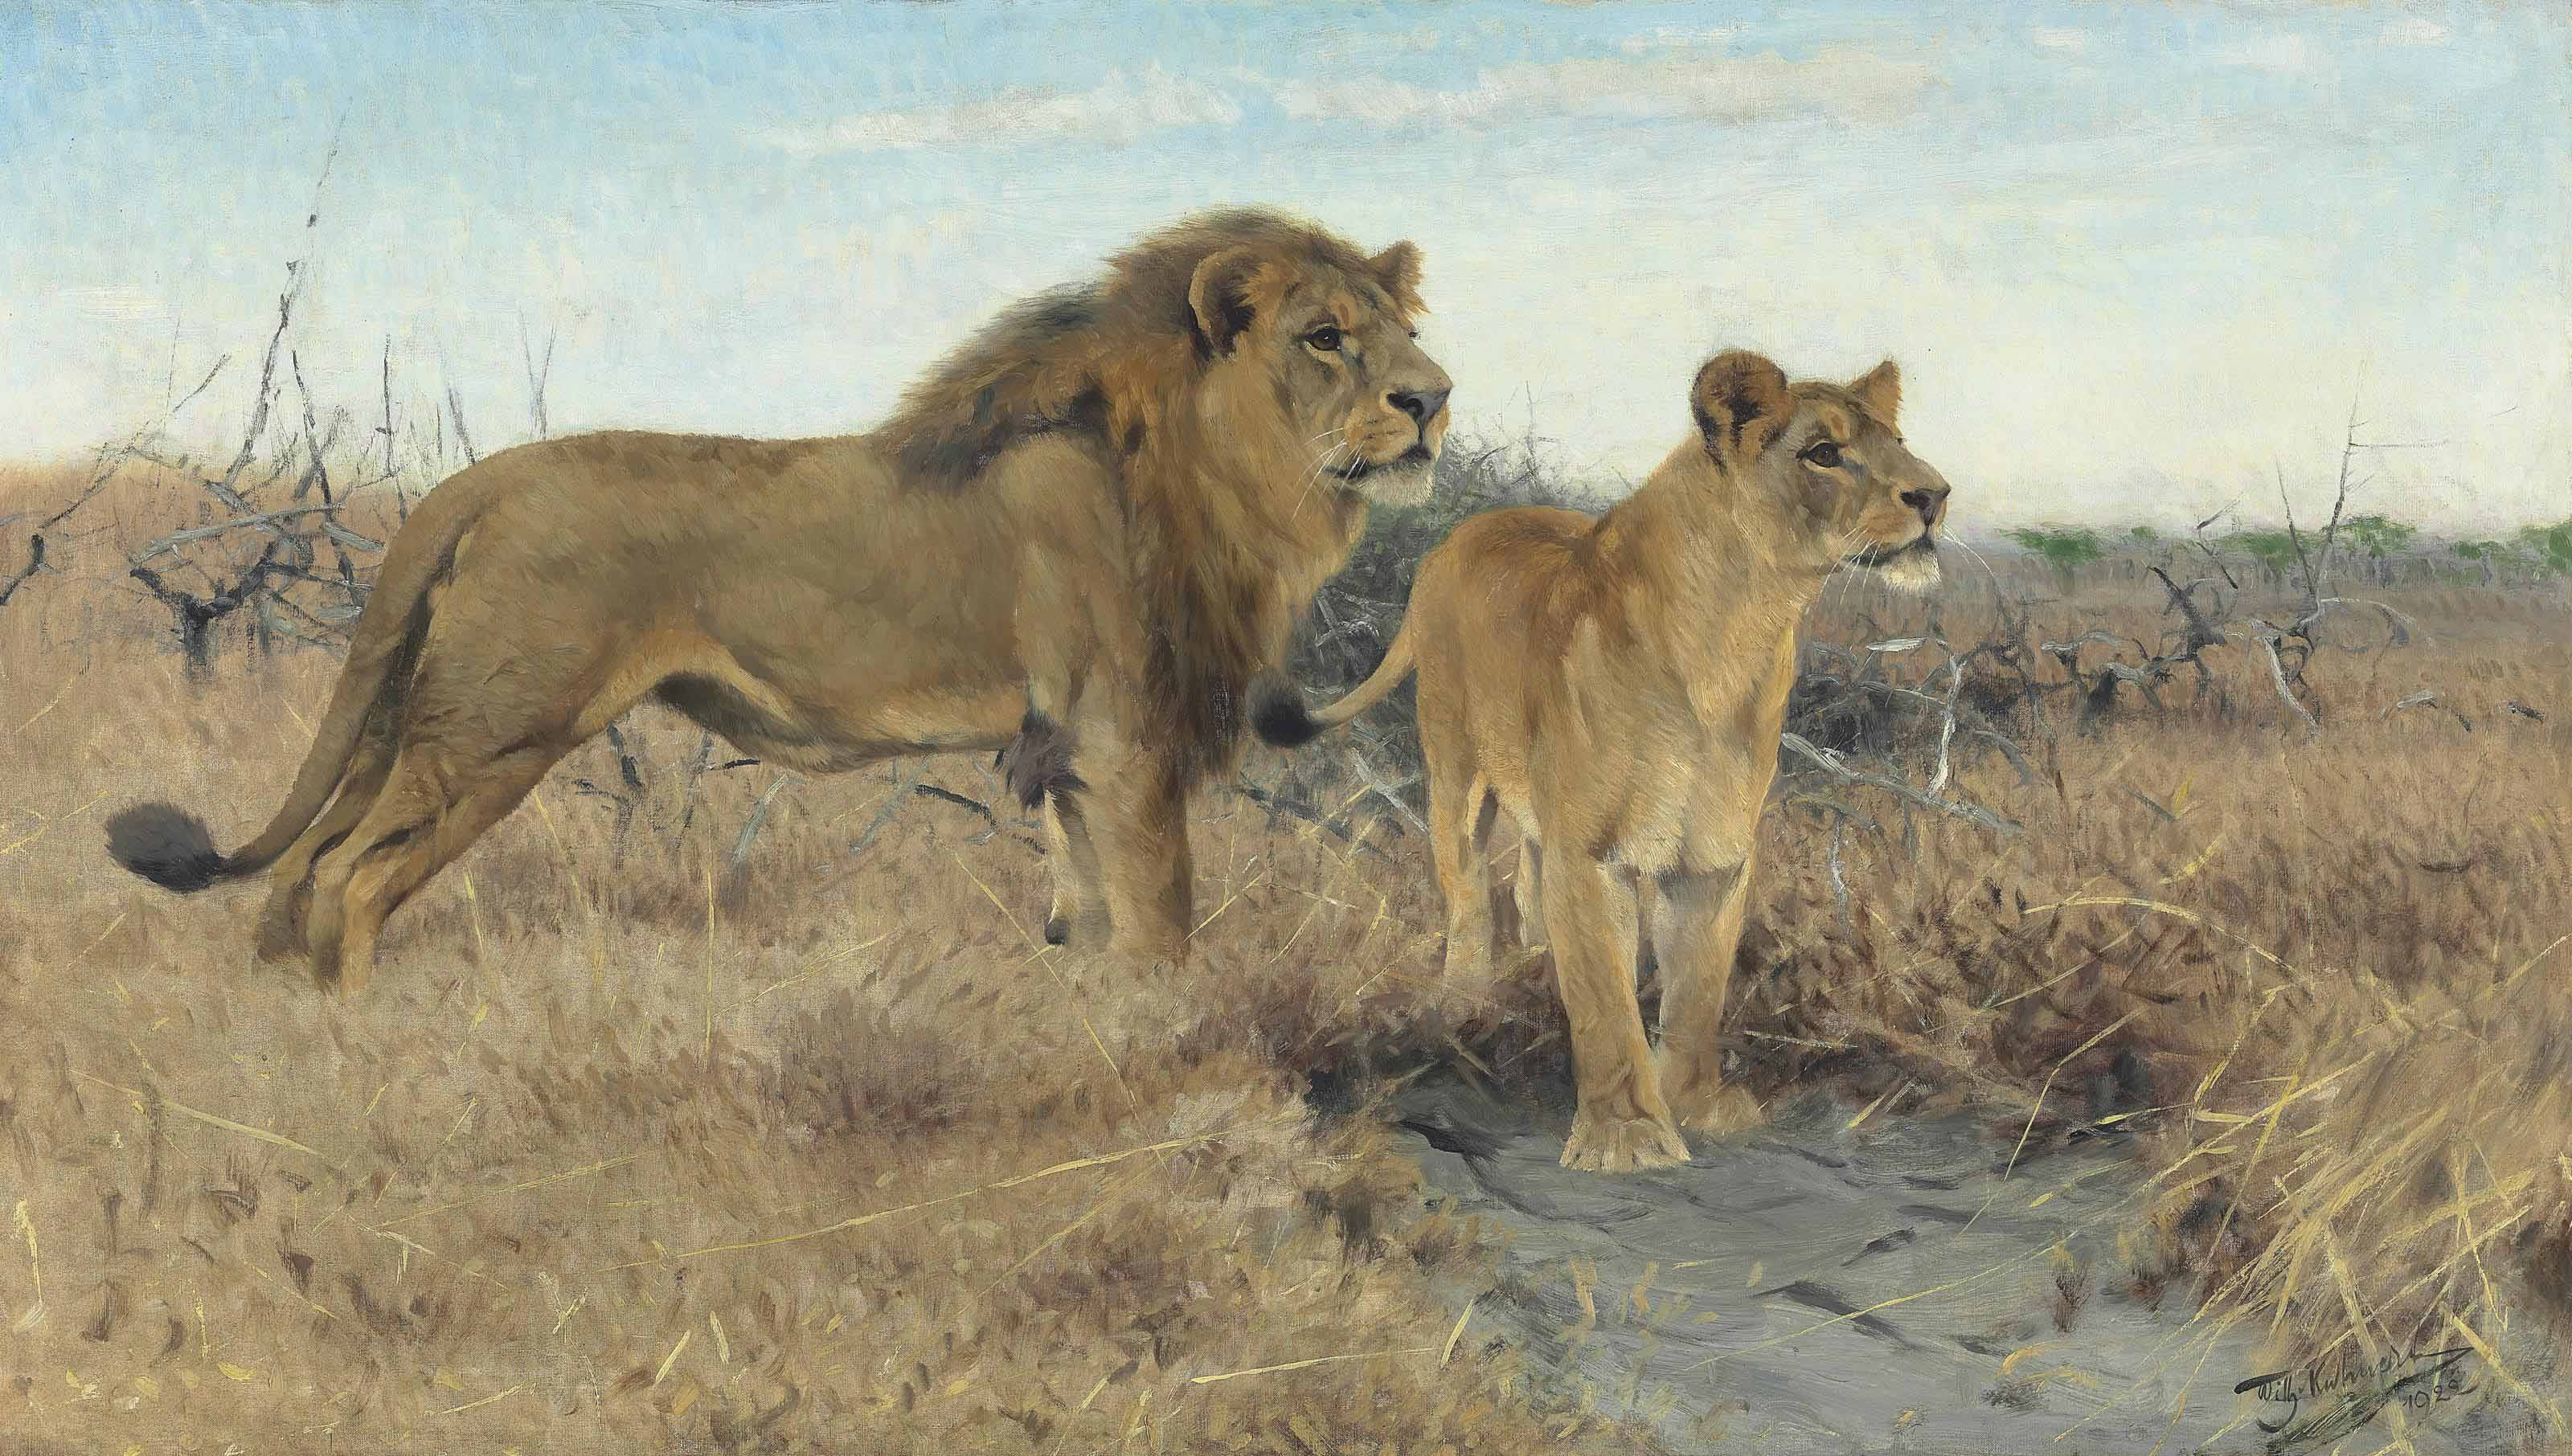 Lions on the plains of Africa